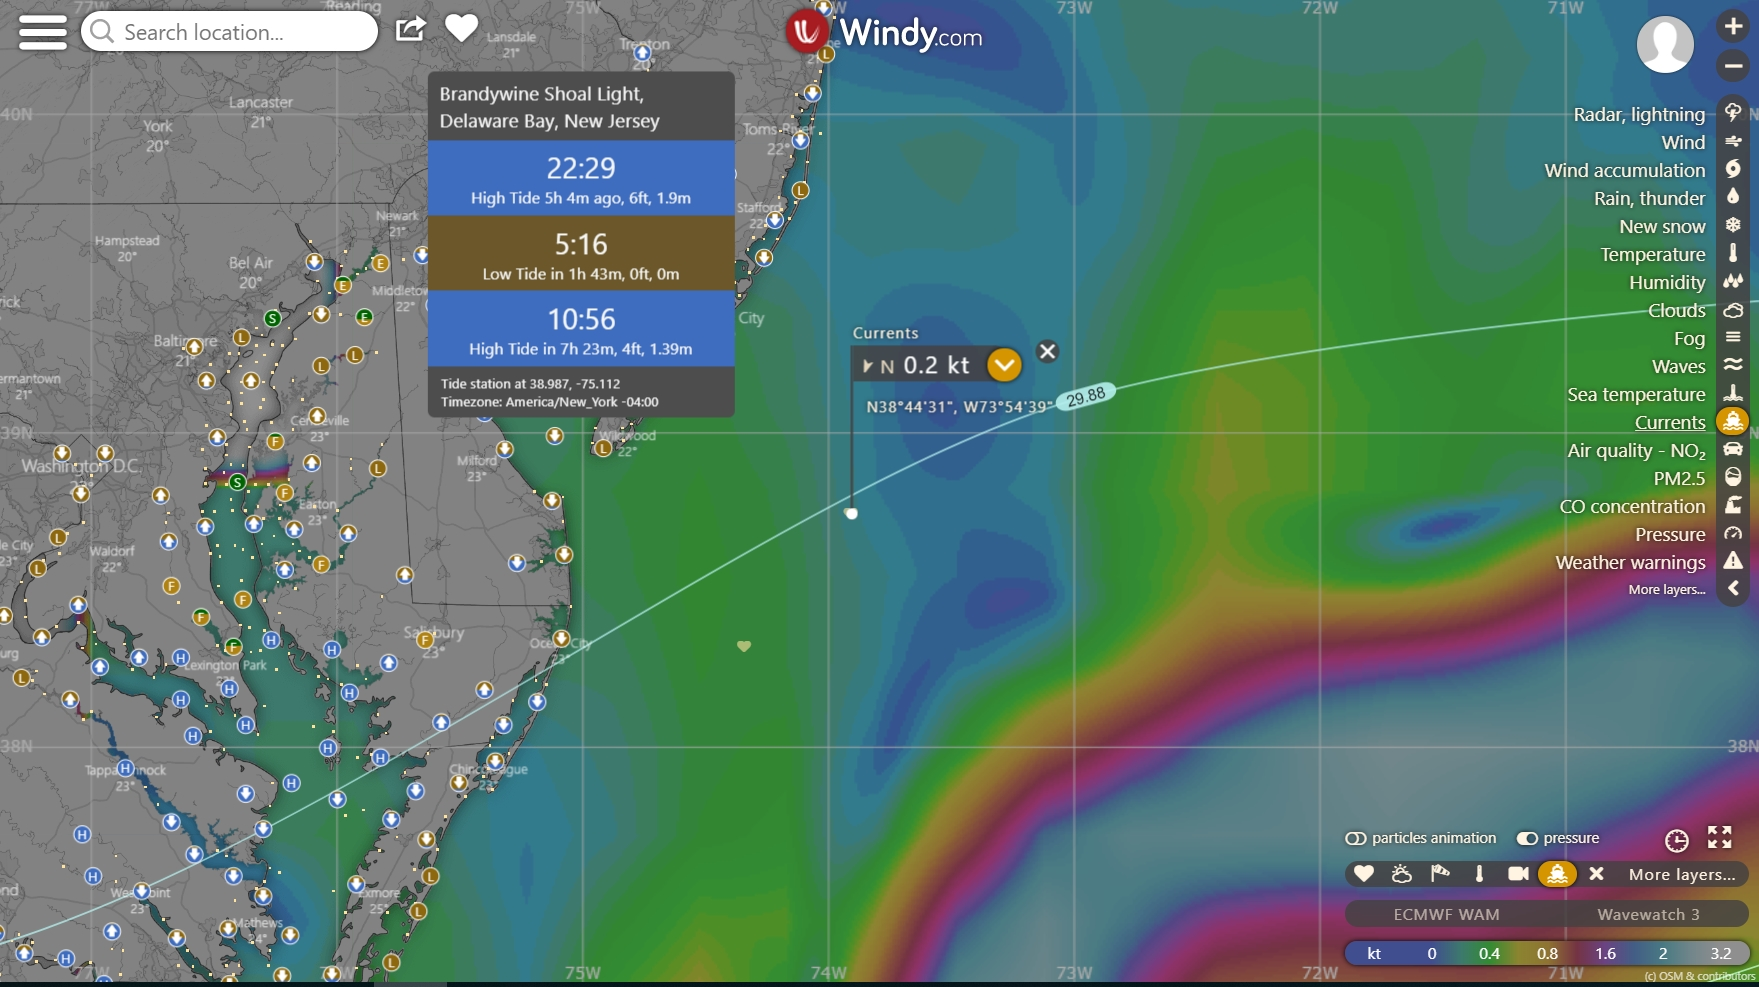 2019-06-19 09.34.05 - Windy_ Currents - Google Chrome.jpg